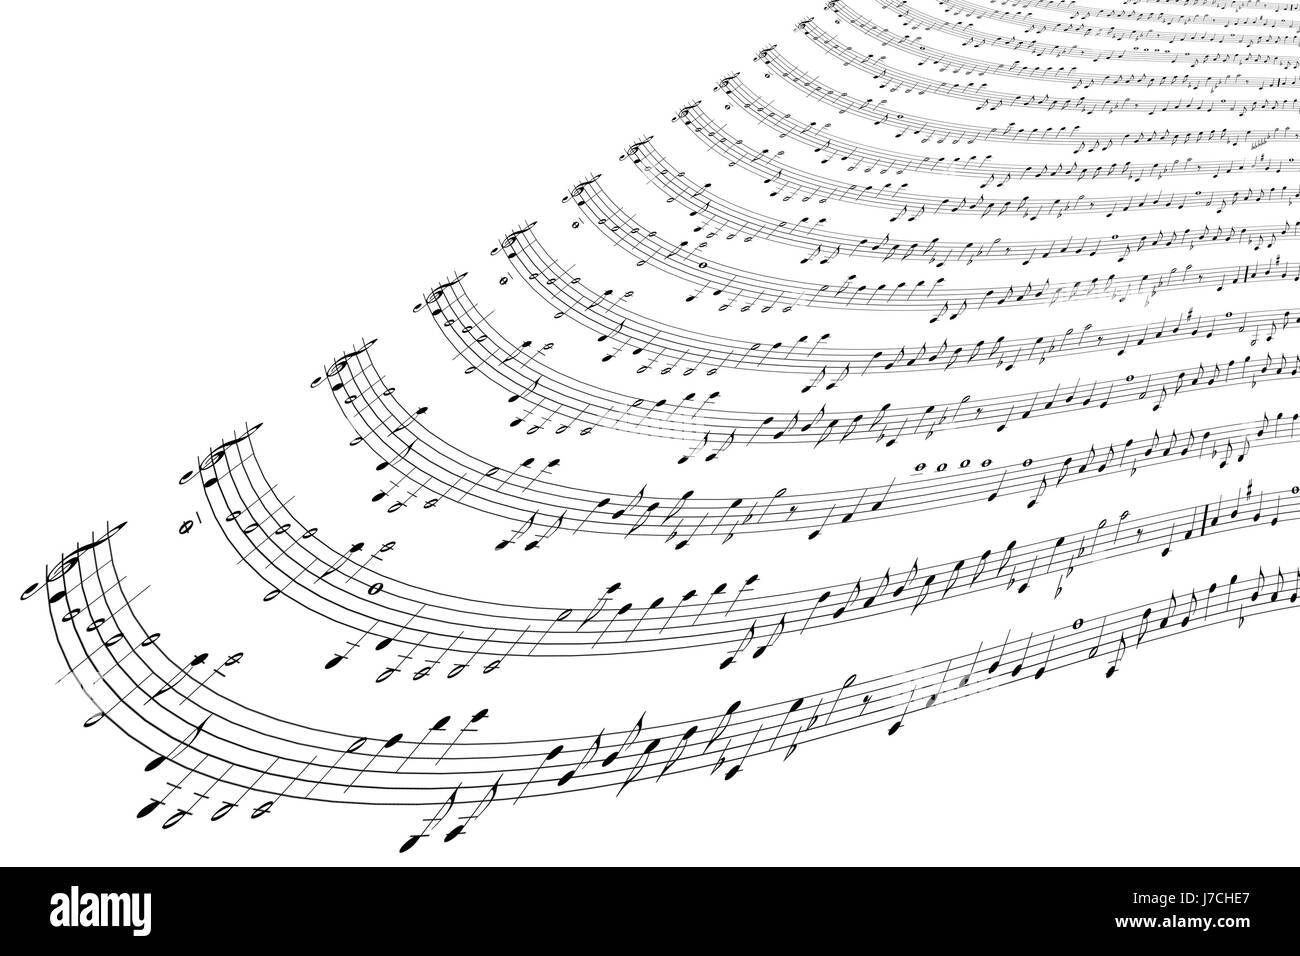 music notes songs song score clef treble notes songs song crooked warped - Stock Image